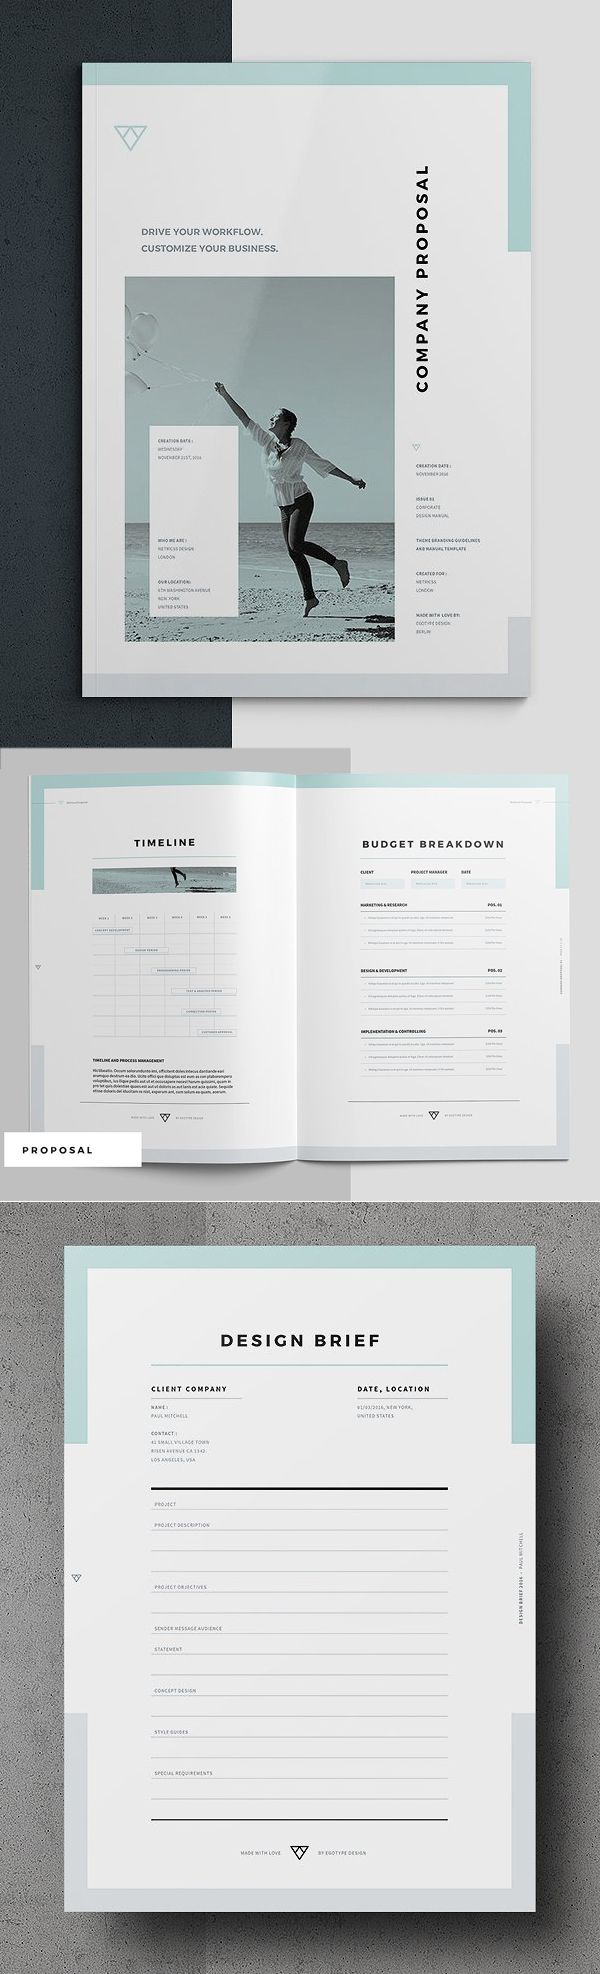 Professional Business Proposal Templates Design 28